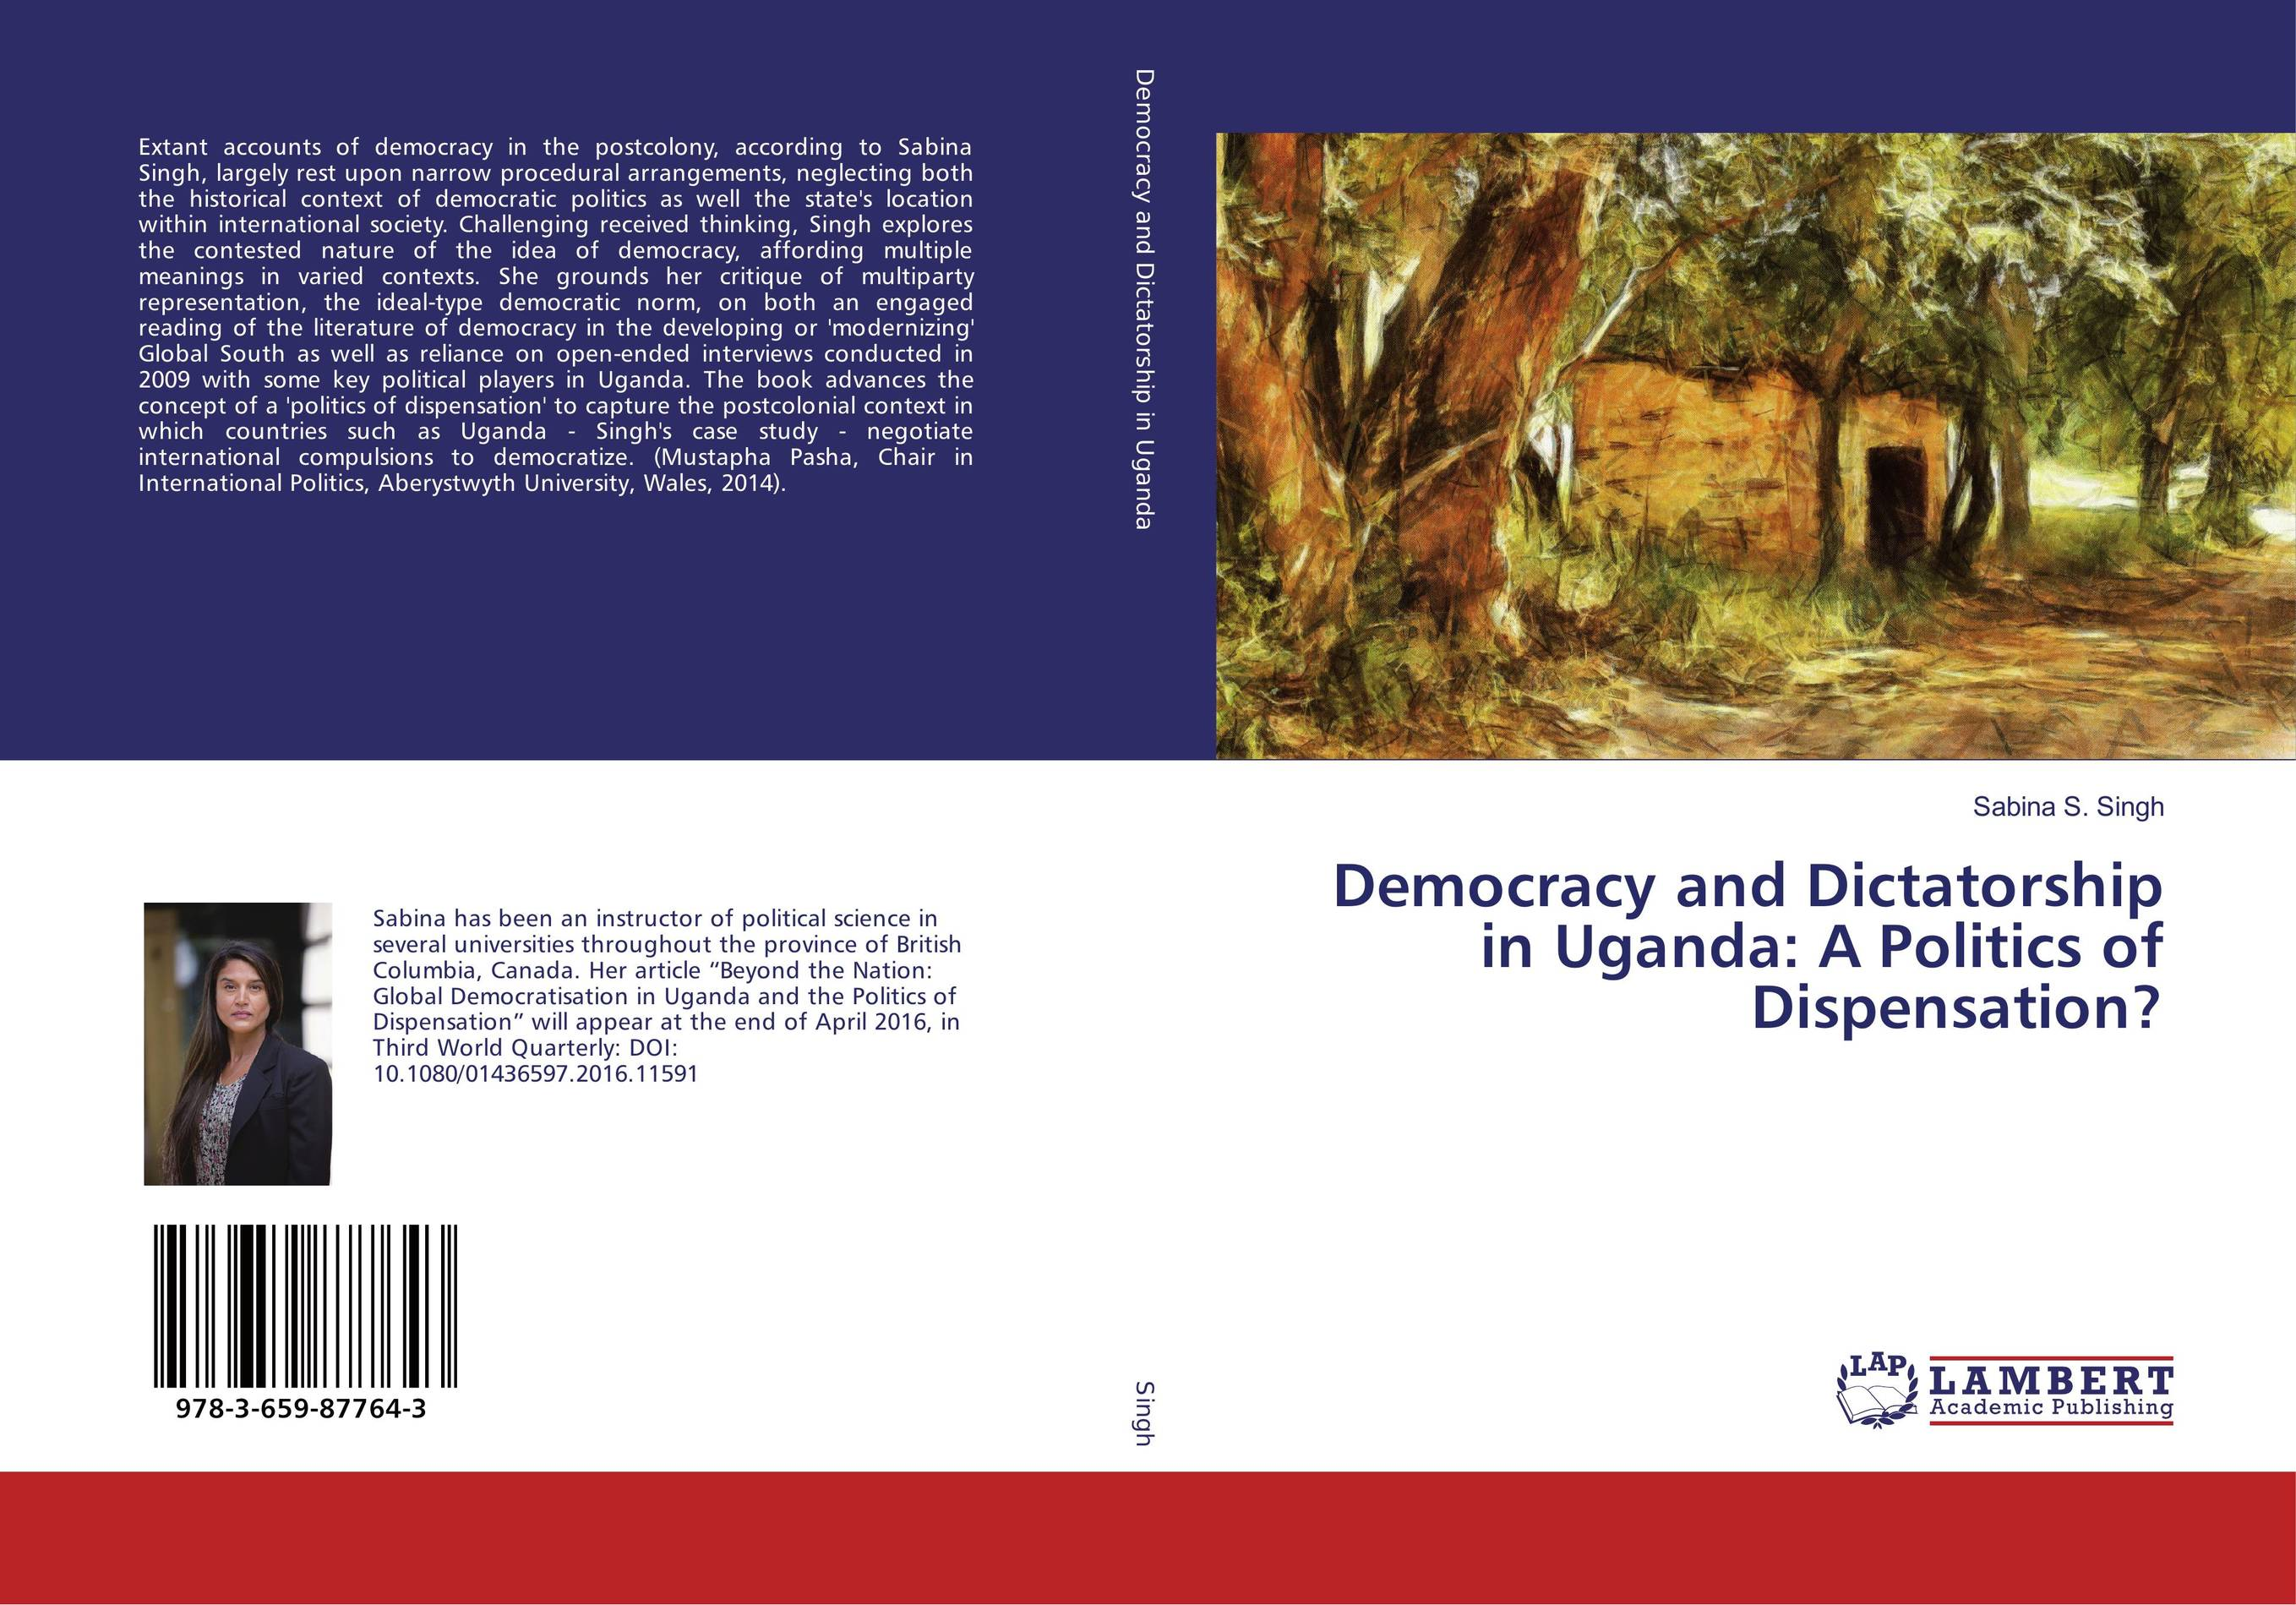 Democracy and Dictatorship in Uganda: A Politics of Dispensation? democracy and dictatorship in uganda a politics of dispensation